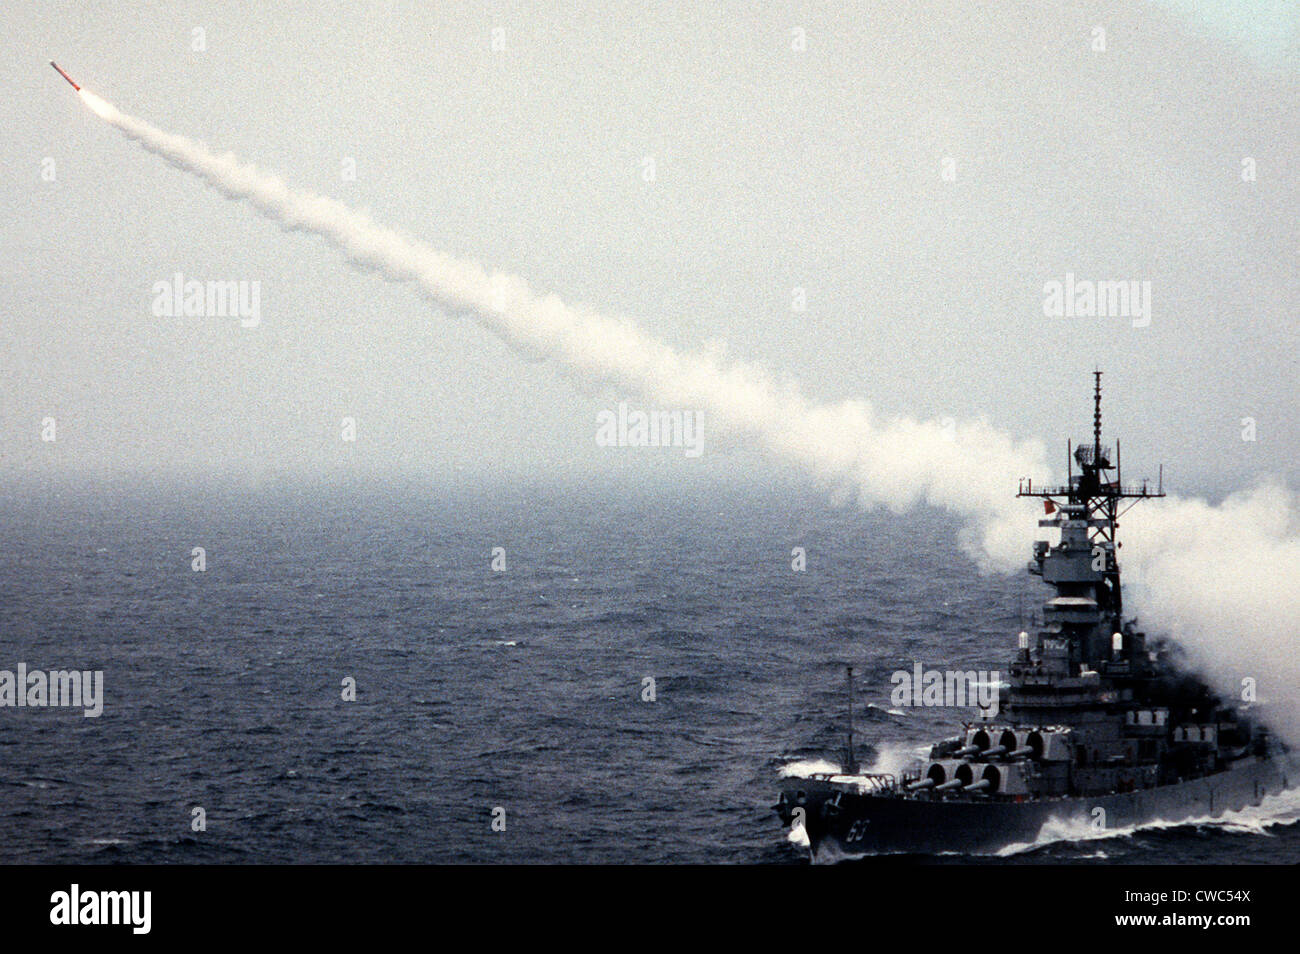 Tomahawk Missile Stock Photos & Tomahawk Missile Stock